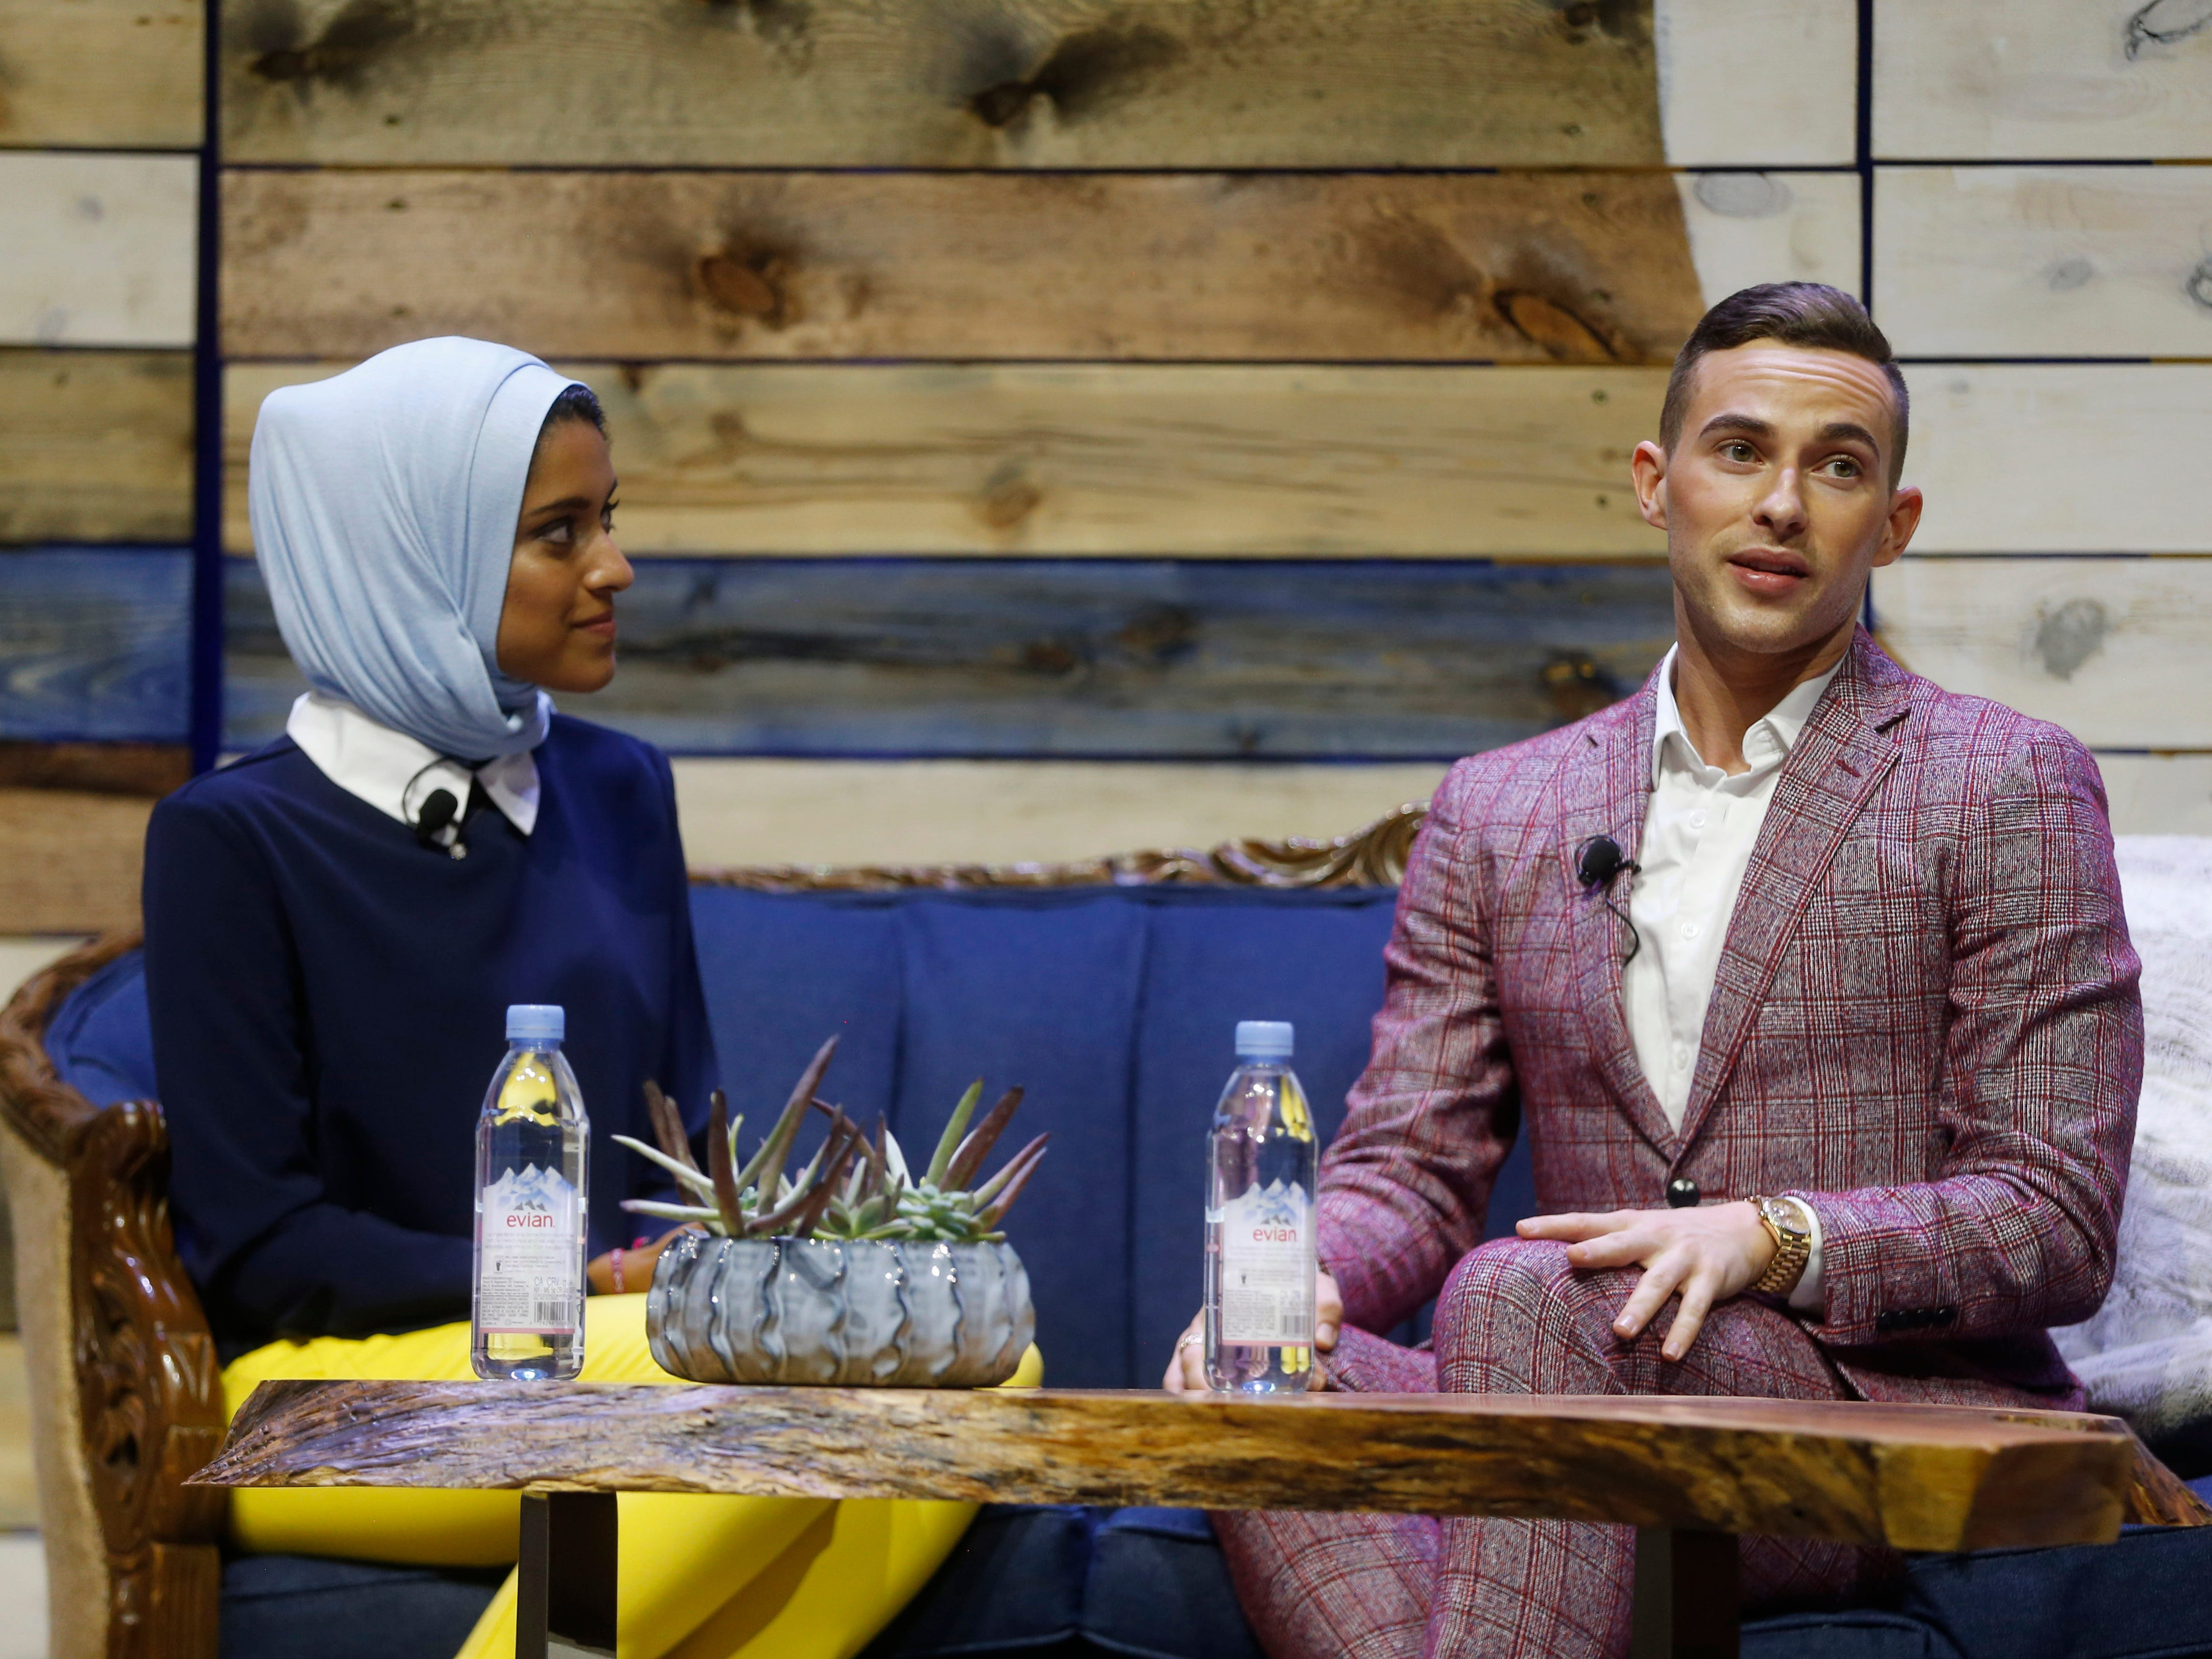 Olympic figure skater Adam Rippon (right) talks with WHBF-TV reporter and moderator Tahera Rahman Saturday, Aug. 4, 2018, during a panel at Newbo Evolve, a three-day music, art and inspiration festival in Cedar Rapids, Iowa.